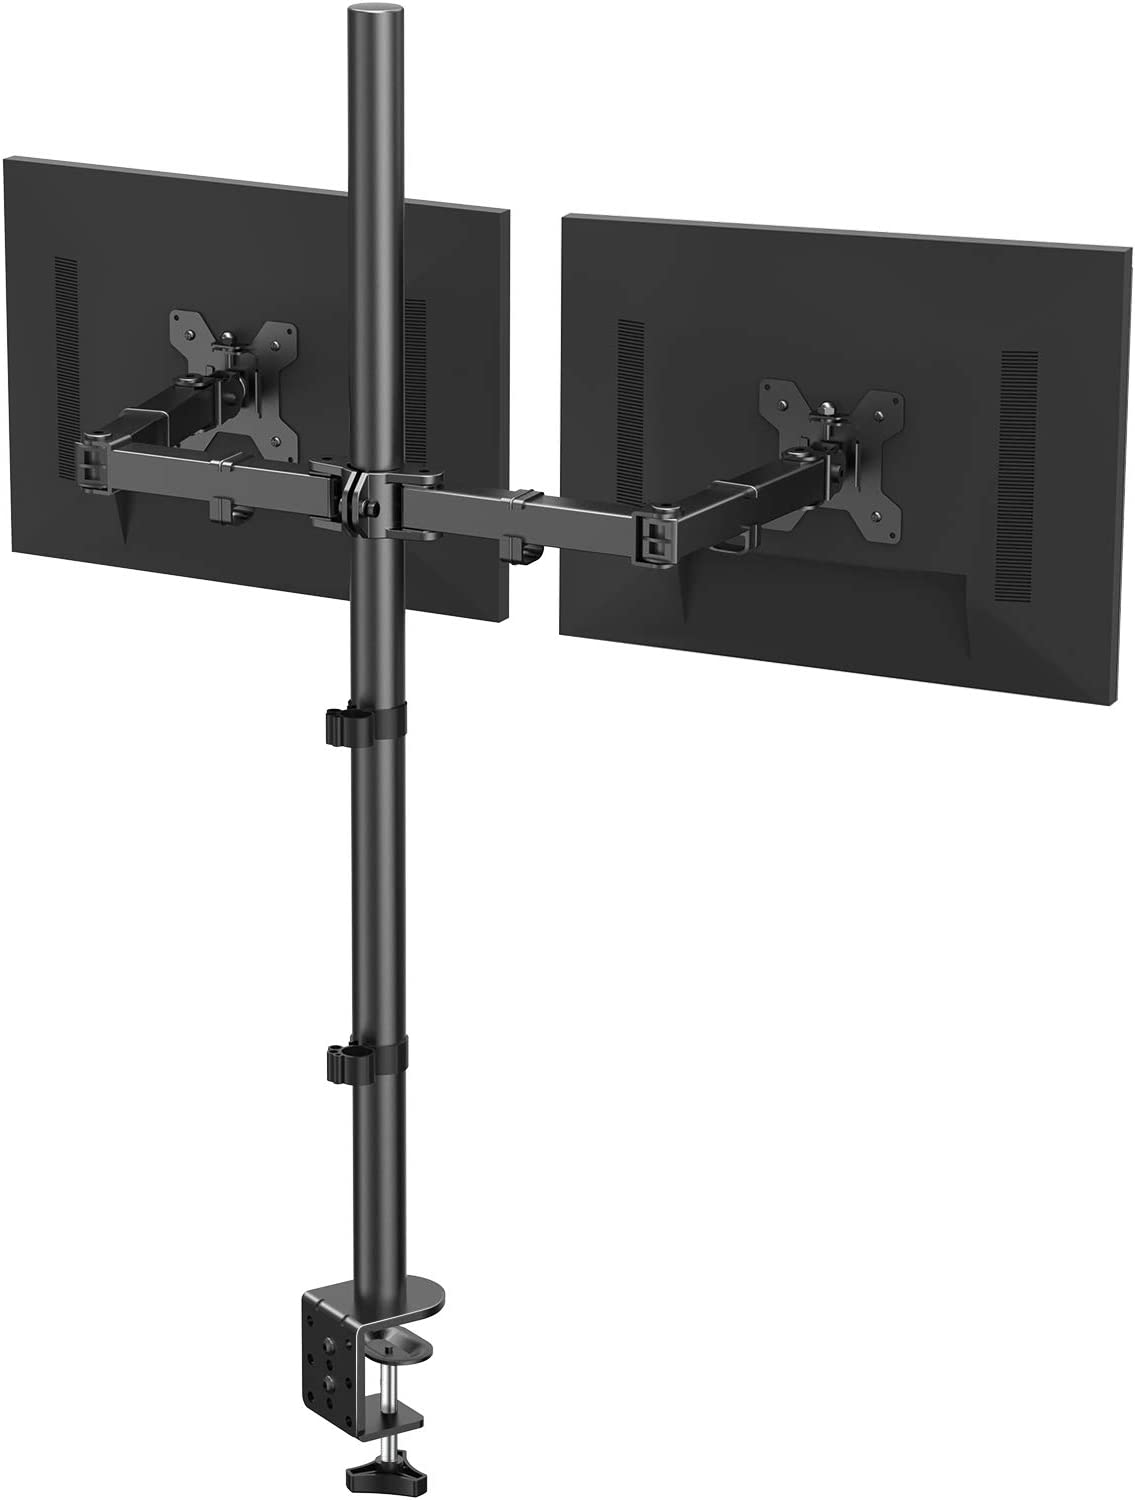 HUANUO Dual Monitor Stand with Extra Tall Pole 39.37 inch, Fully Adjustable Monitor Mount, C Clamp & Grommet Mounting Base